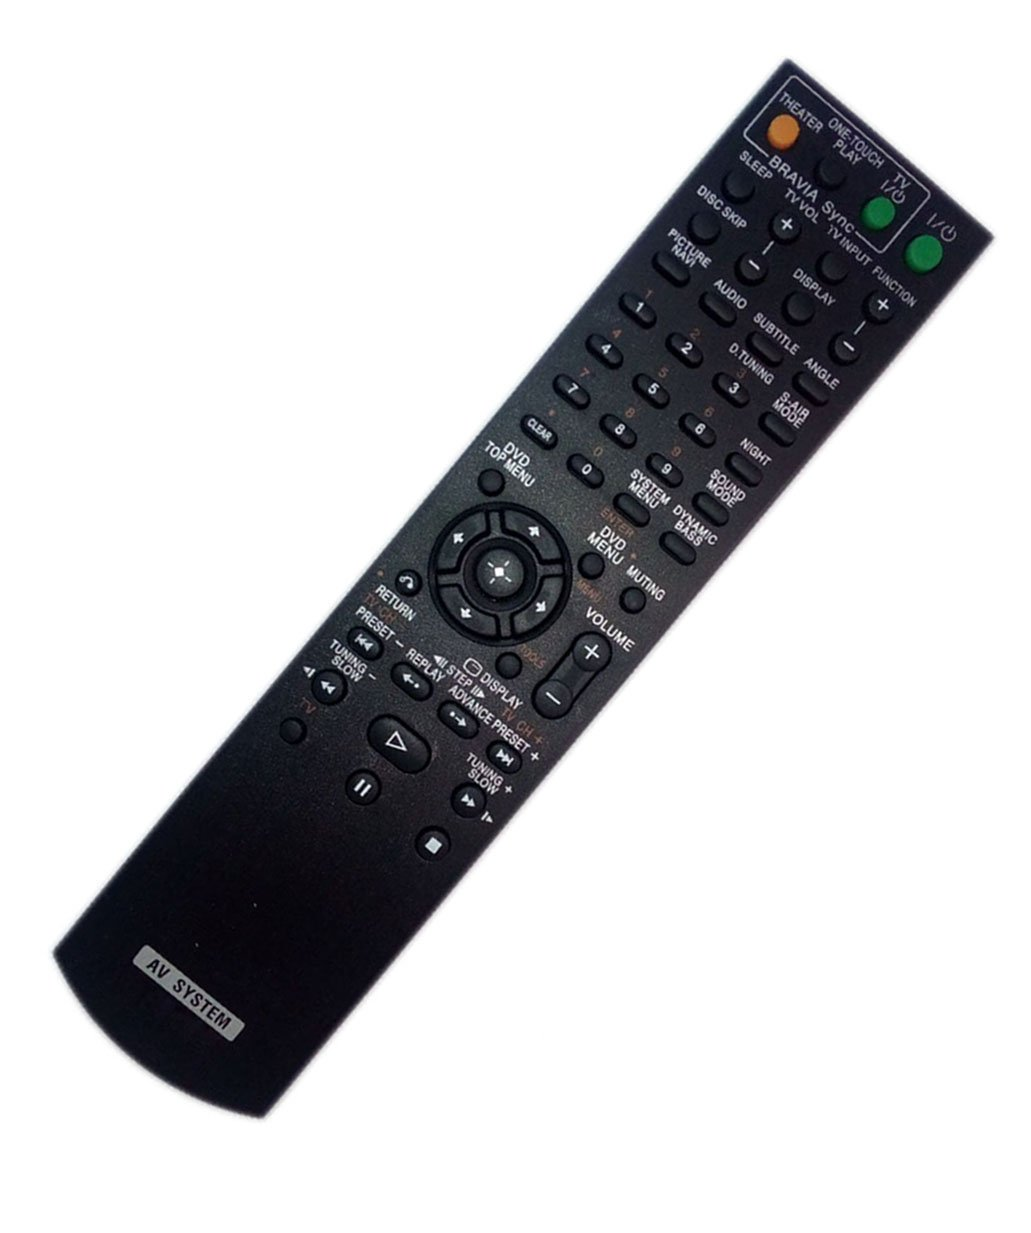 Replaced Remote Control for Sony DAV-HDX576WF HCDHDX585 DAVHDX279W 148057011 HCD-HDX277WC HCDHDX589W Home Theater Audio/Video Receiver AV System